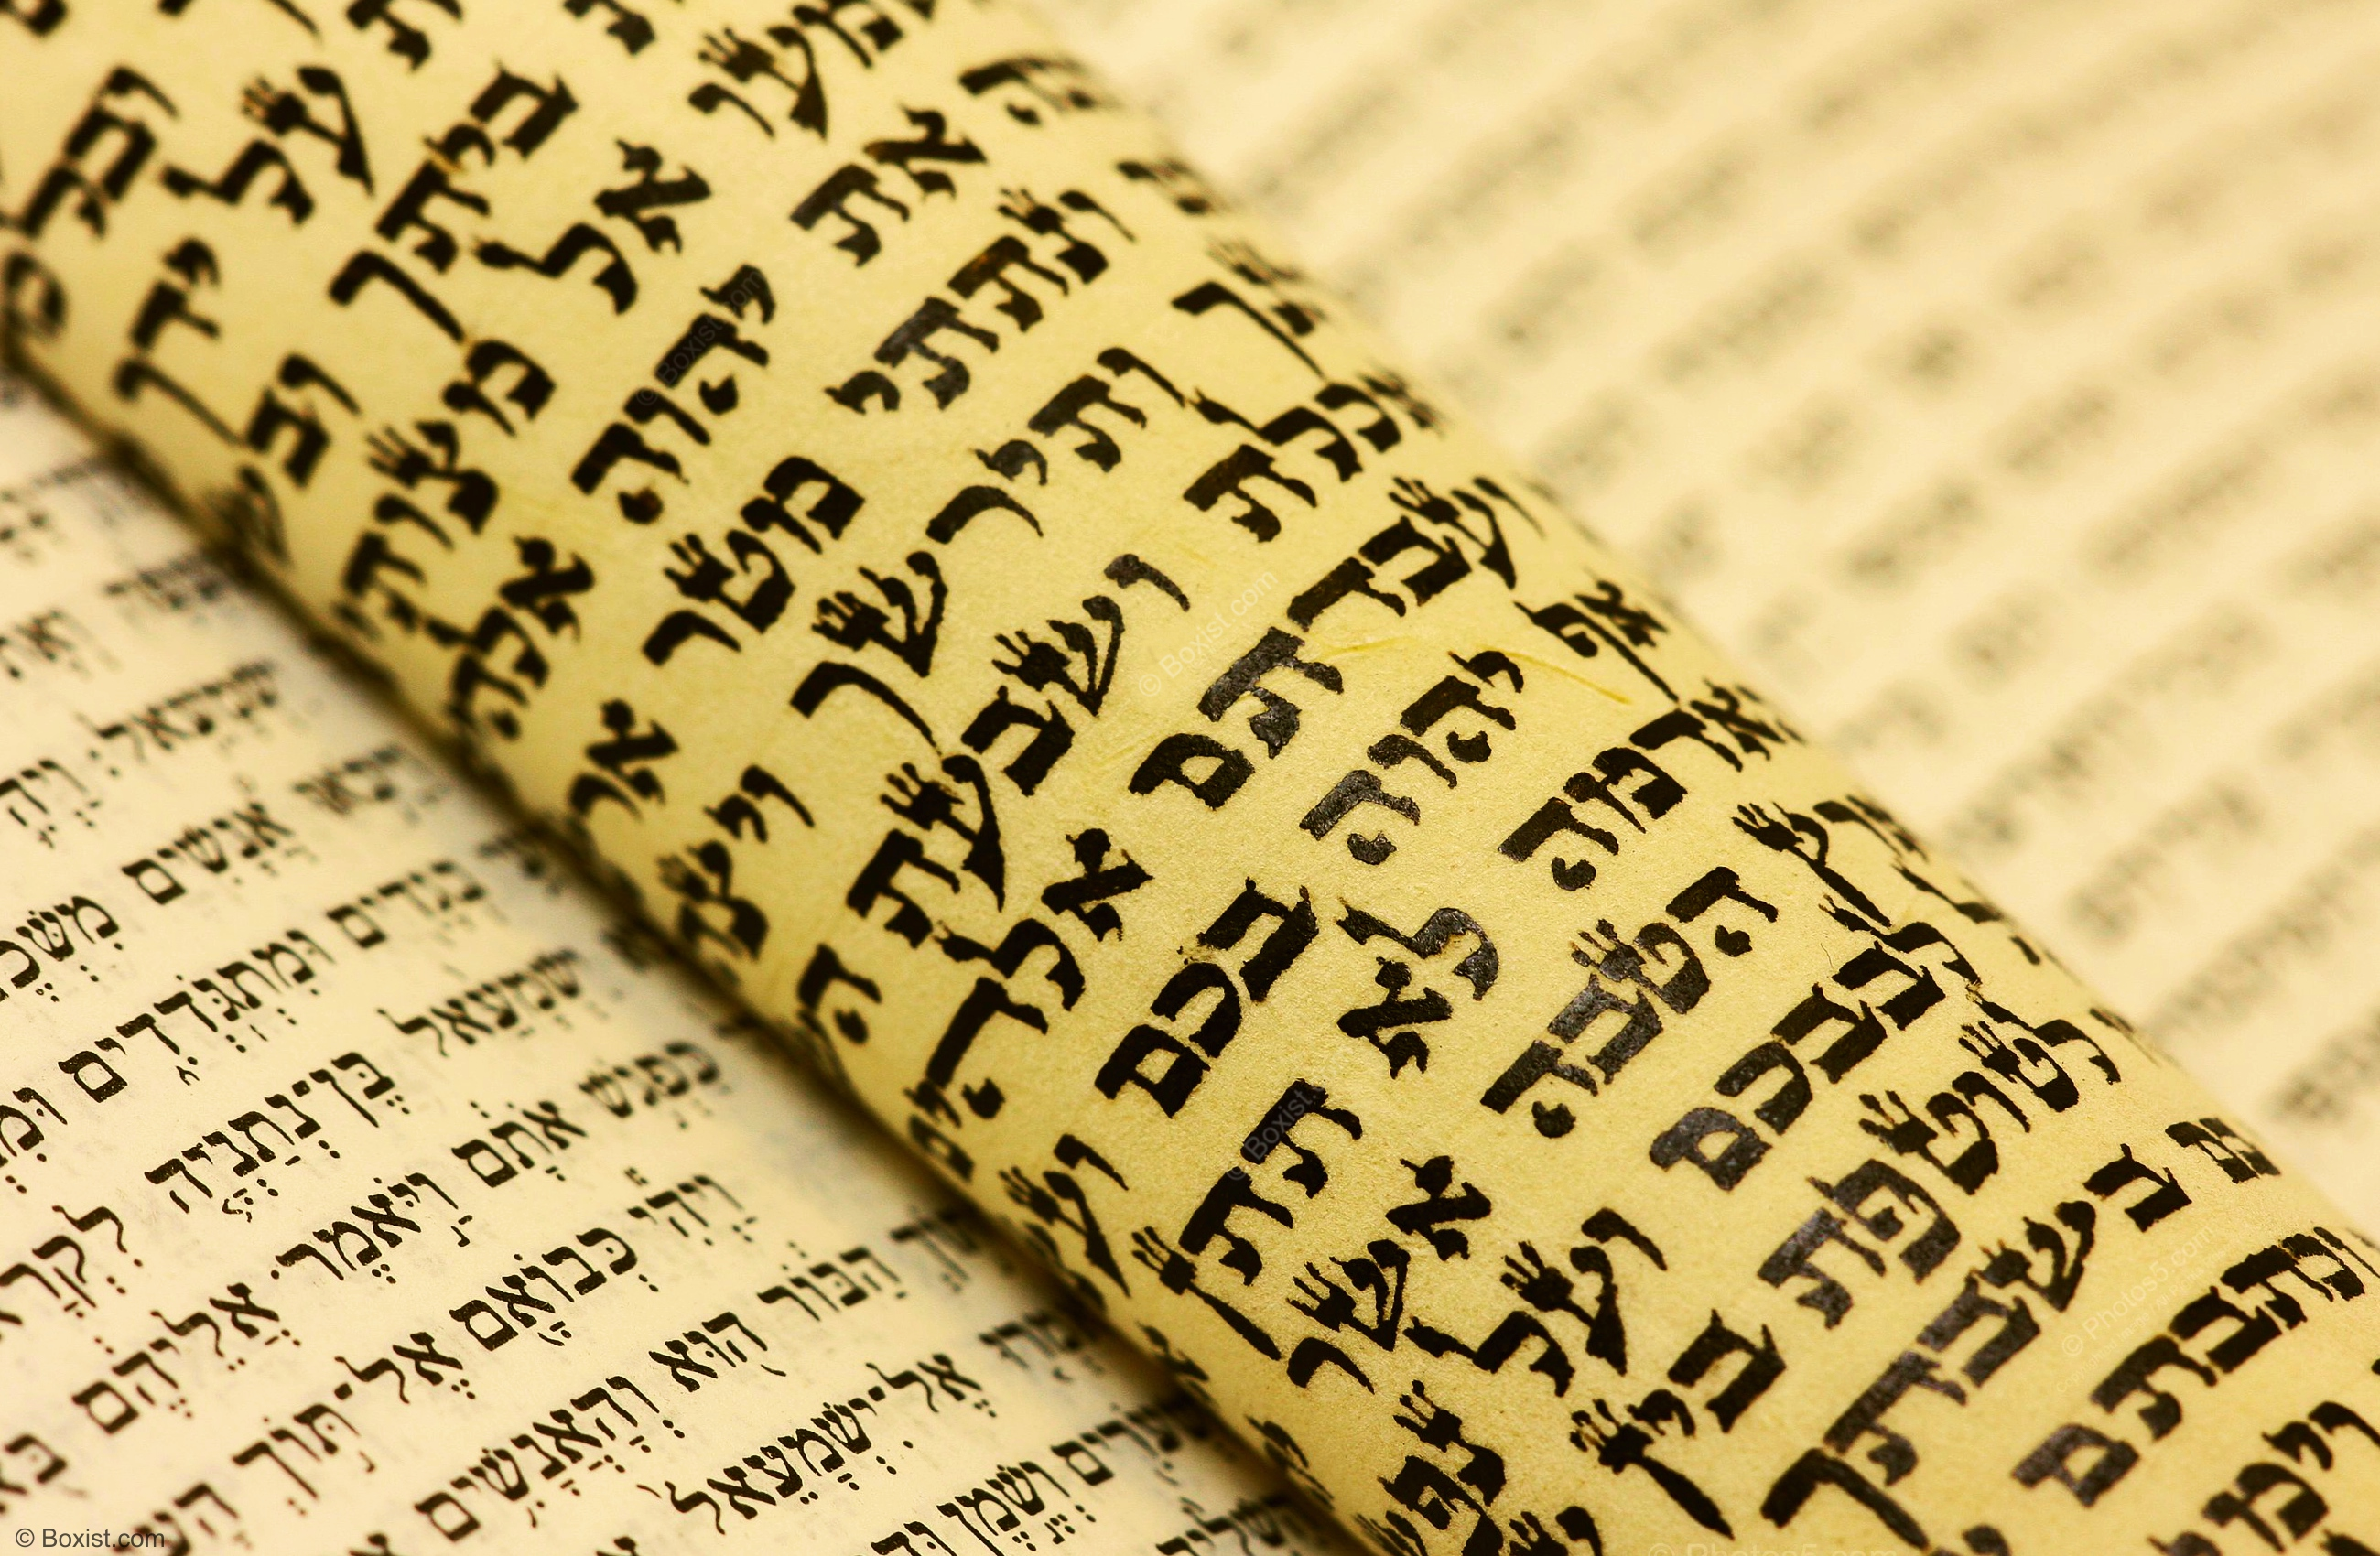 Jewish Hebrew Scroll From the Torah Bible